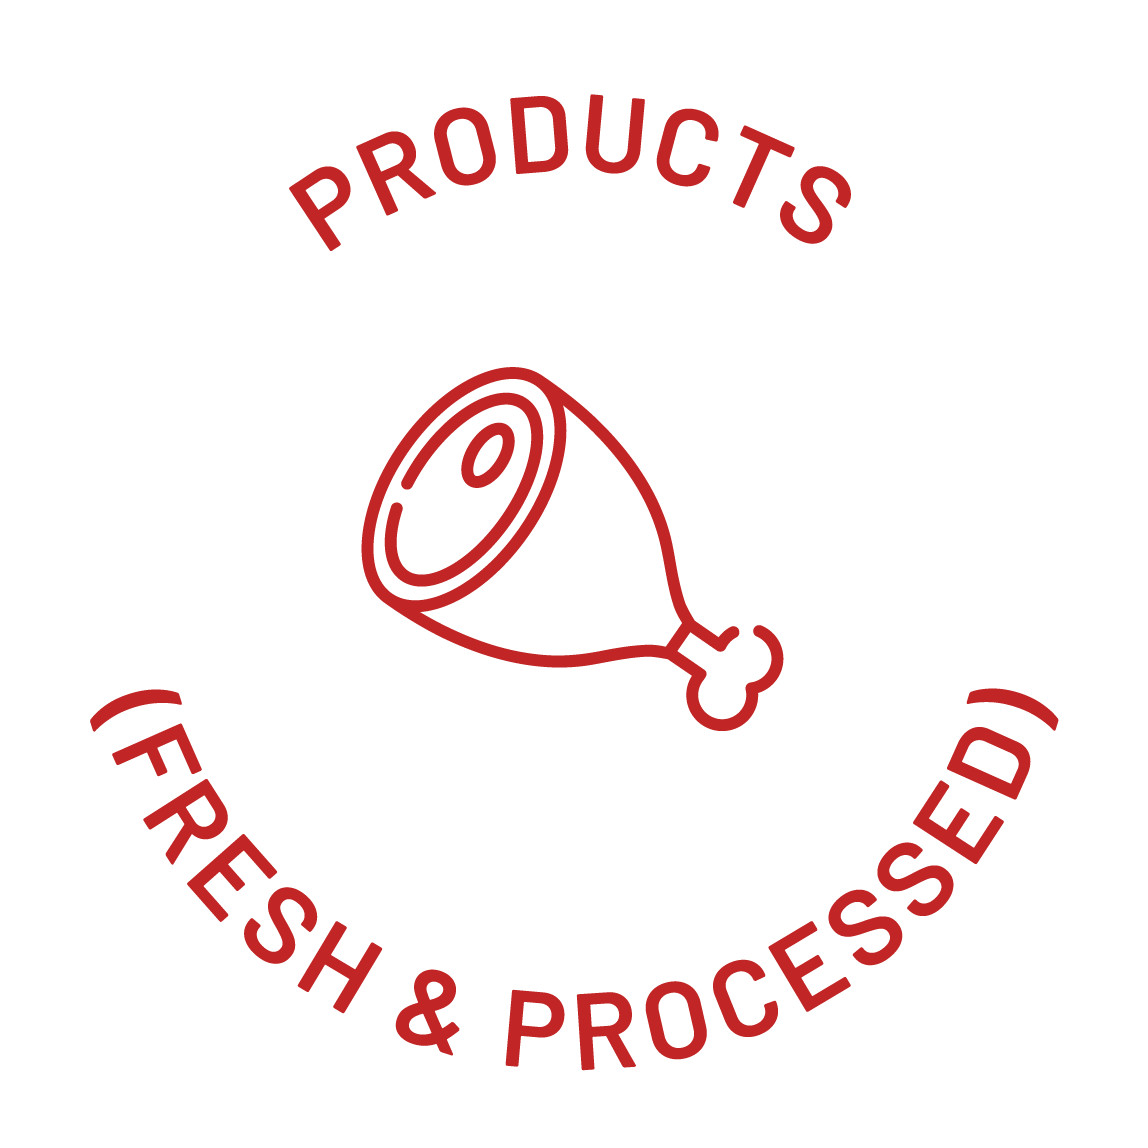 Products (Raw & Processed)